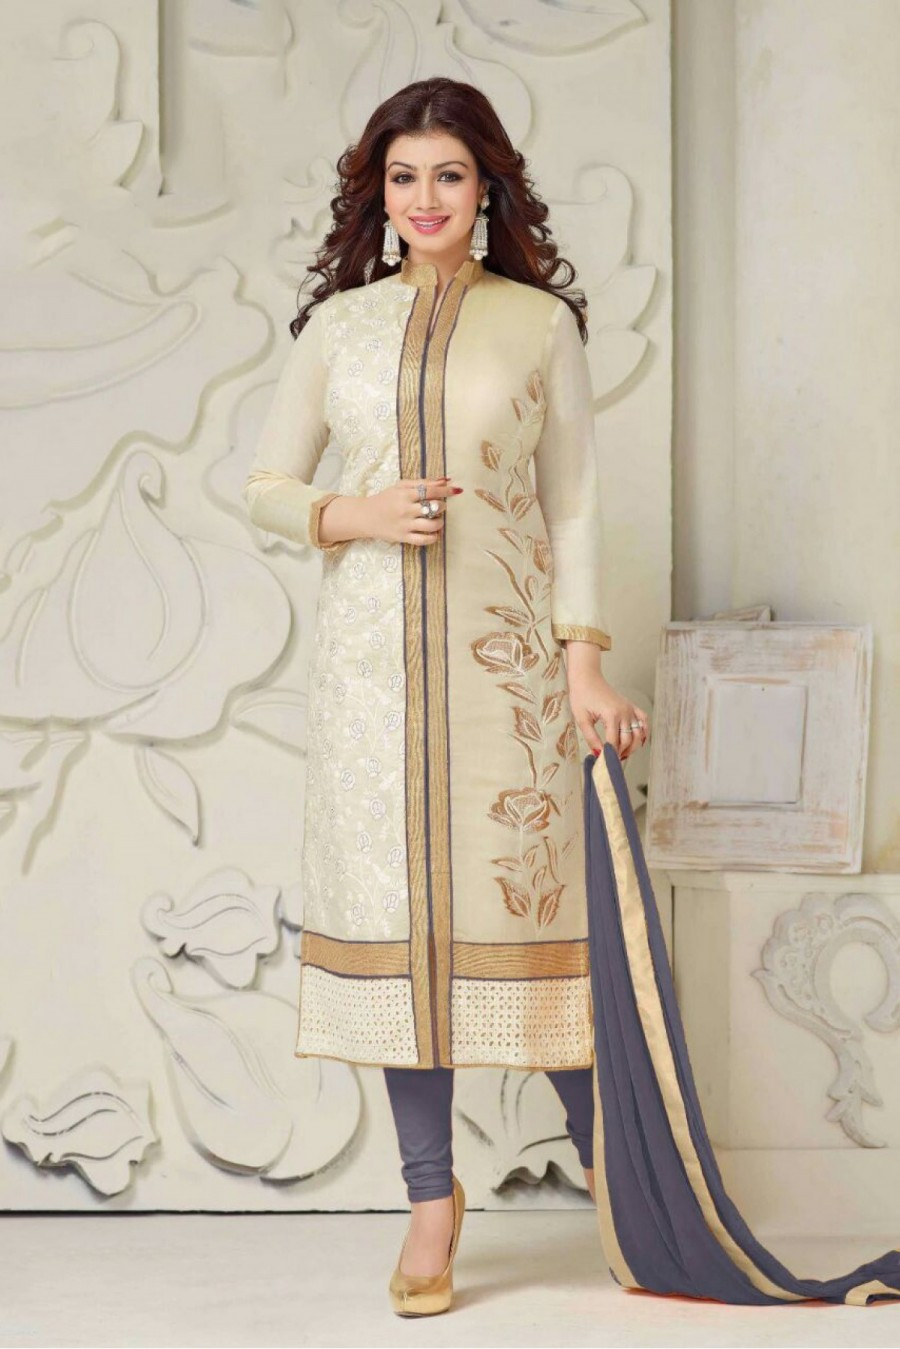 91827718b7 Buy Bollywood Style Ayesha Takia Cotton Party Wear Churidar Suit in Beige  and Grey Colour Online